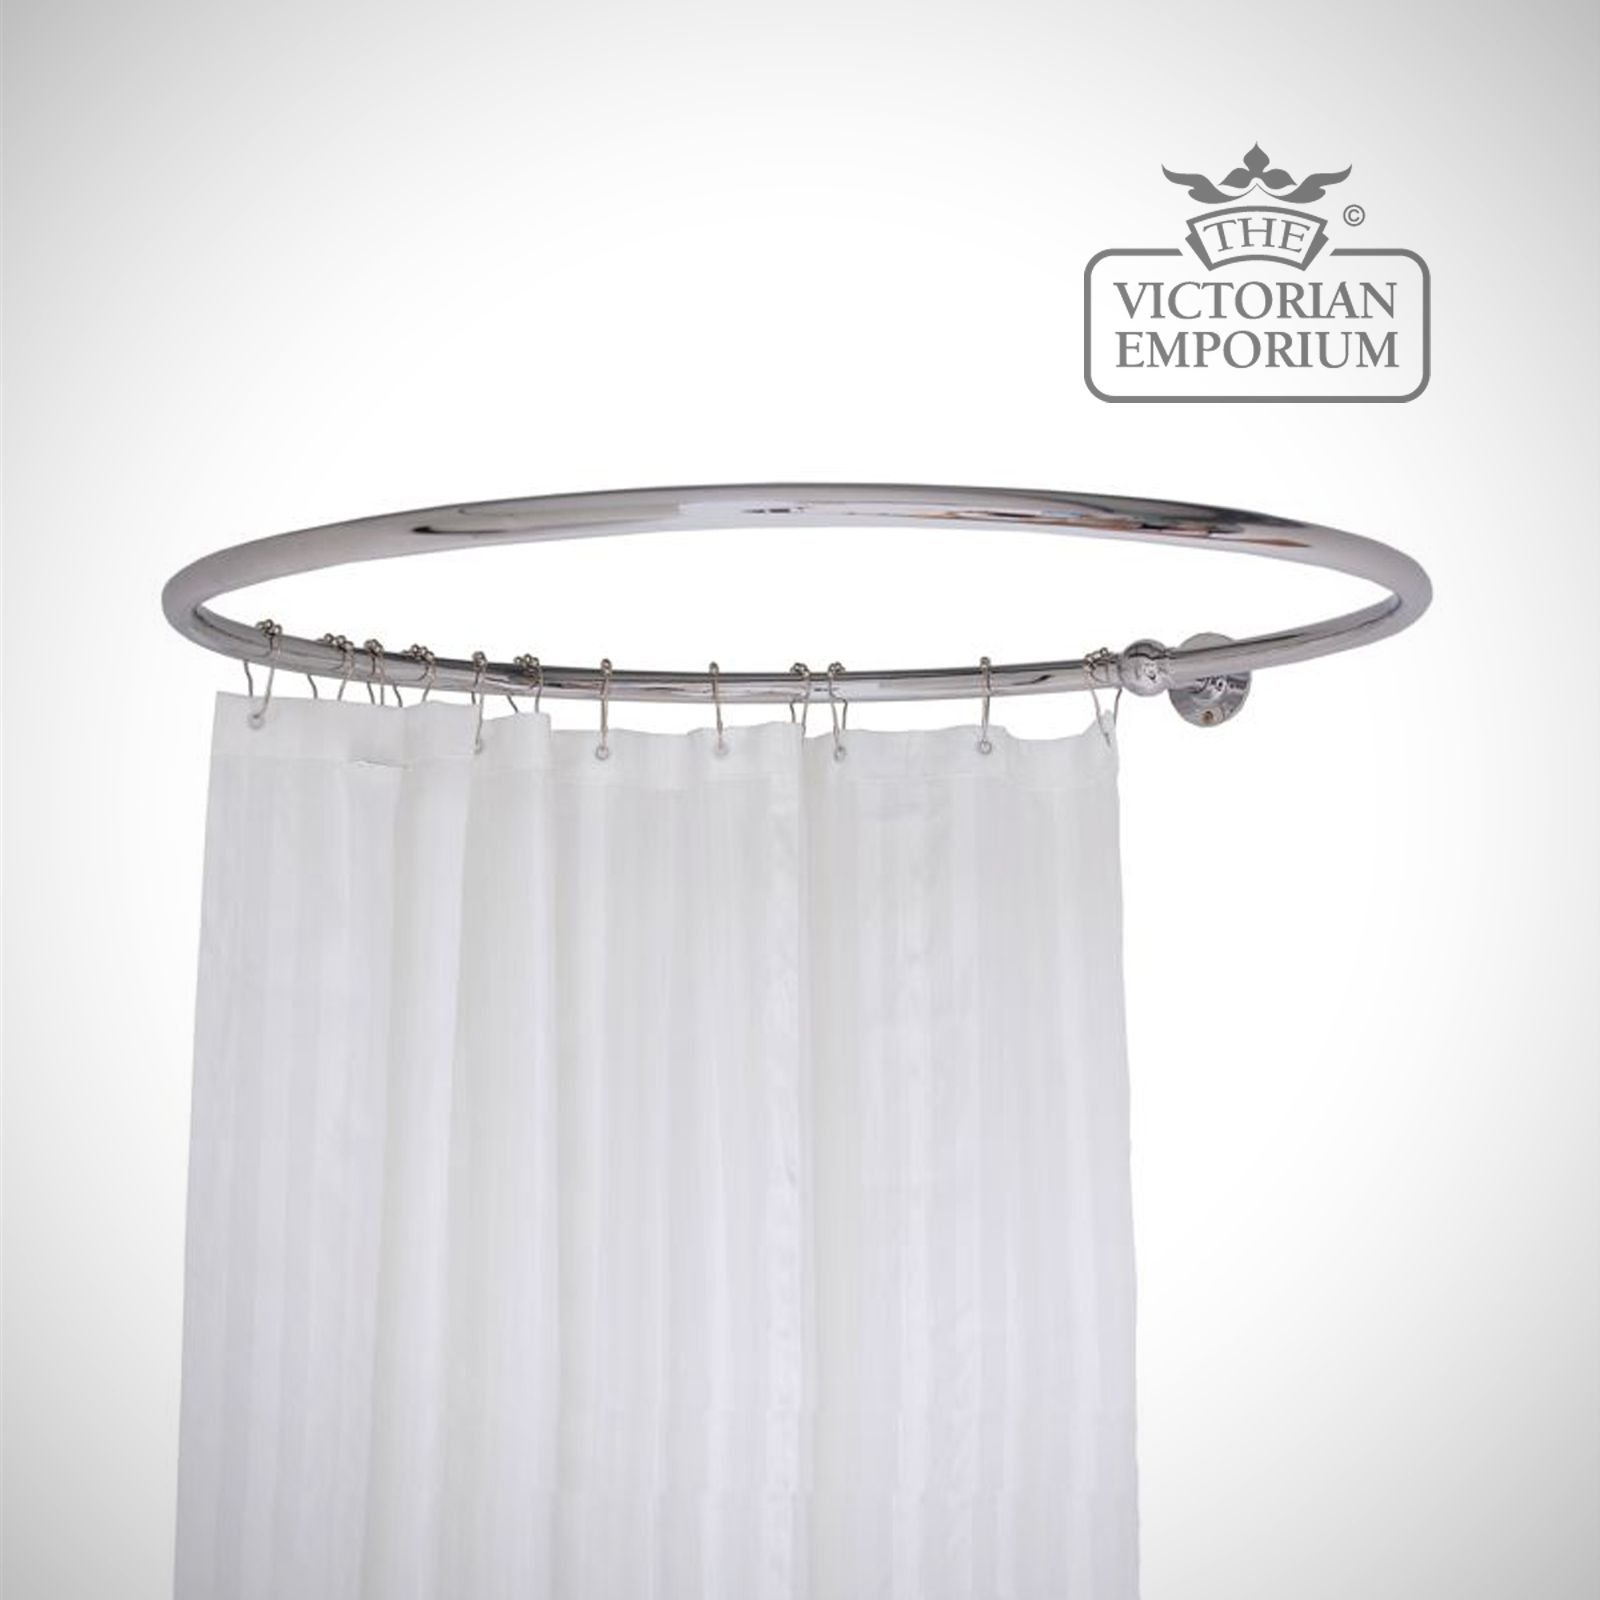 round shower curtain rail chrome with one wall stay. Black Bedroom Furniture Sets. Home Design Ideas